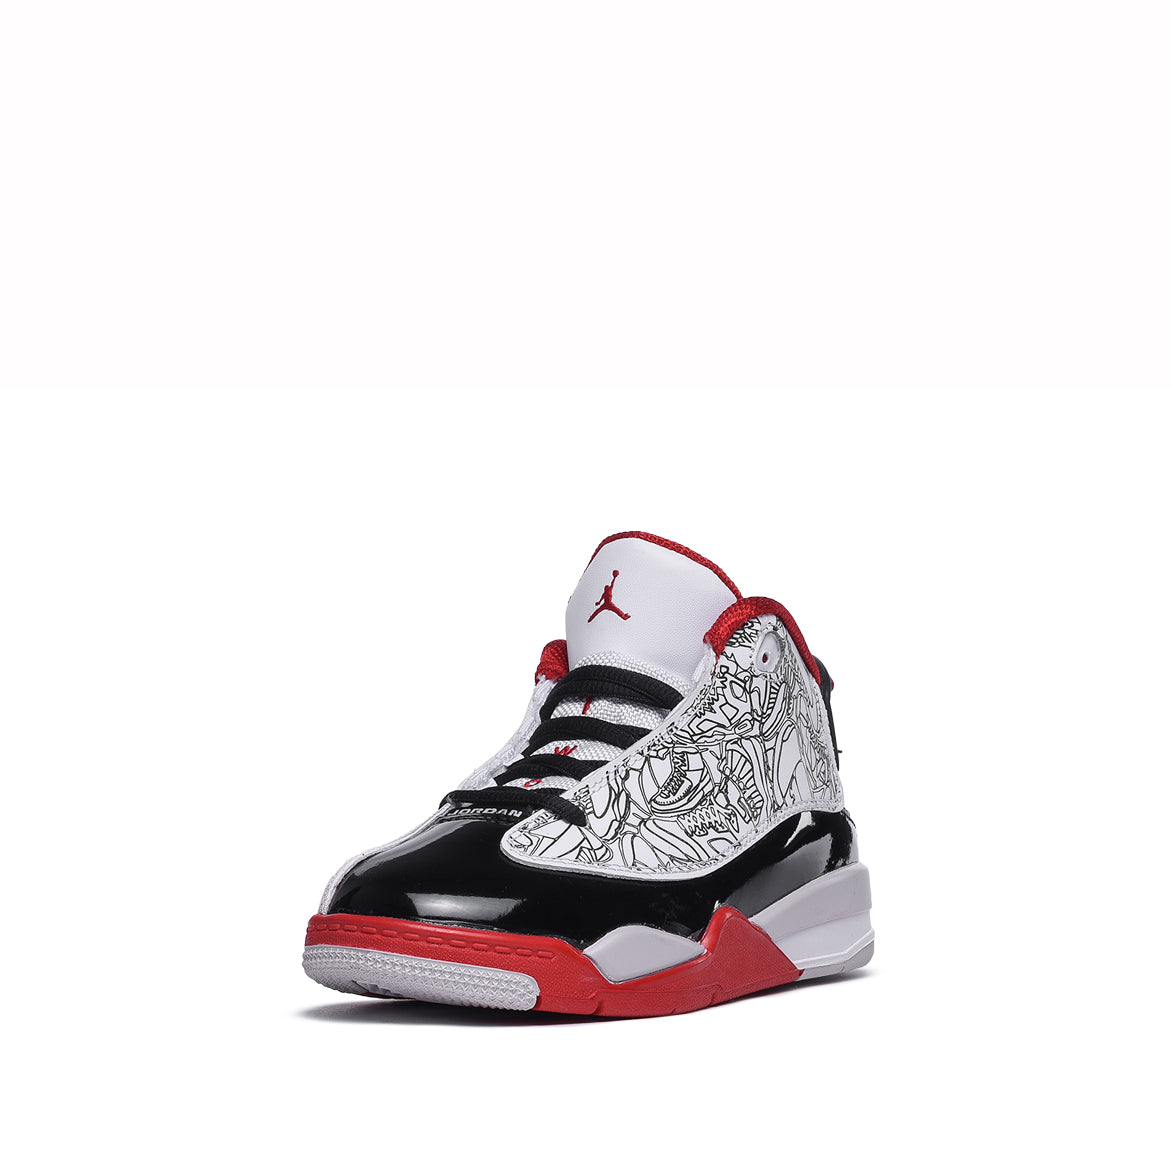 DUB ZERO (PS) - WHITE / BLACK / VARSITY RED